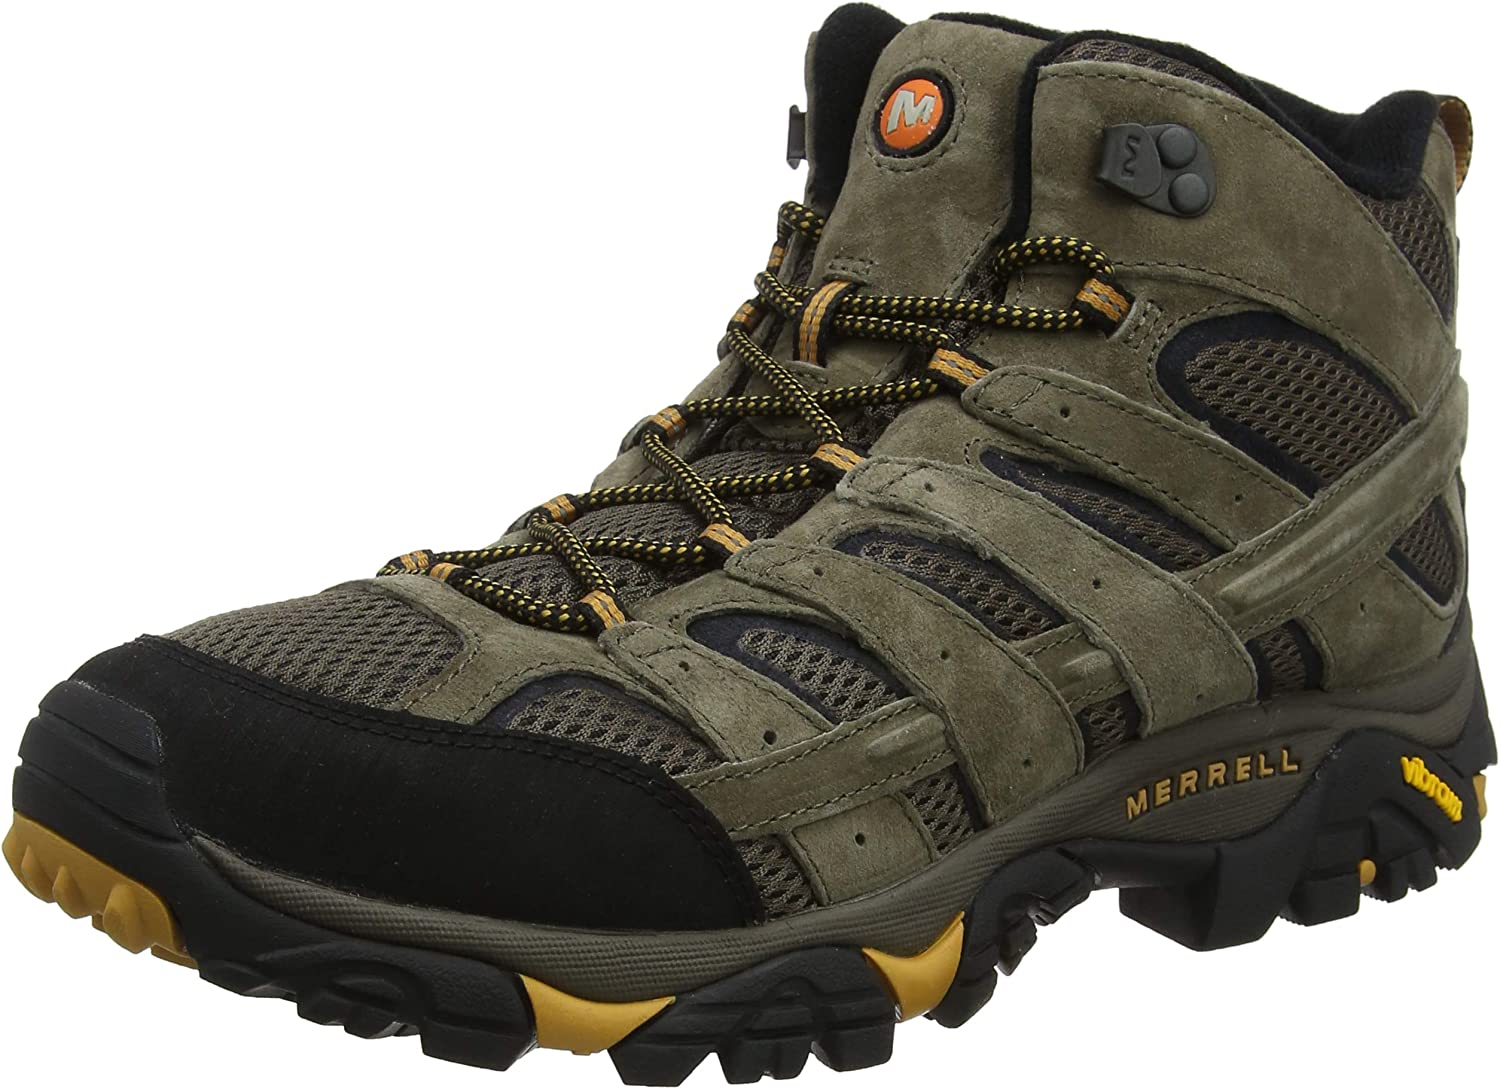 Model Name: Merrell Men's Moab 2 vents Mid Hiking Boot